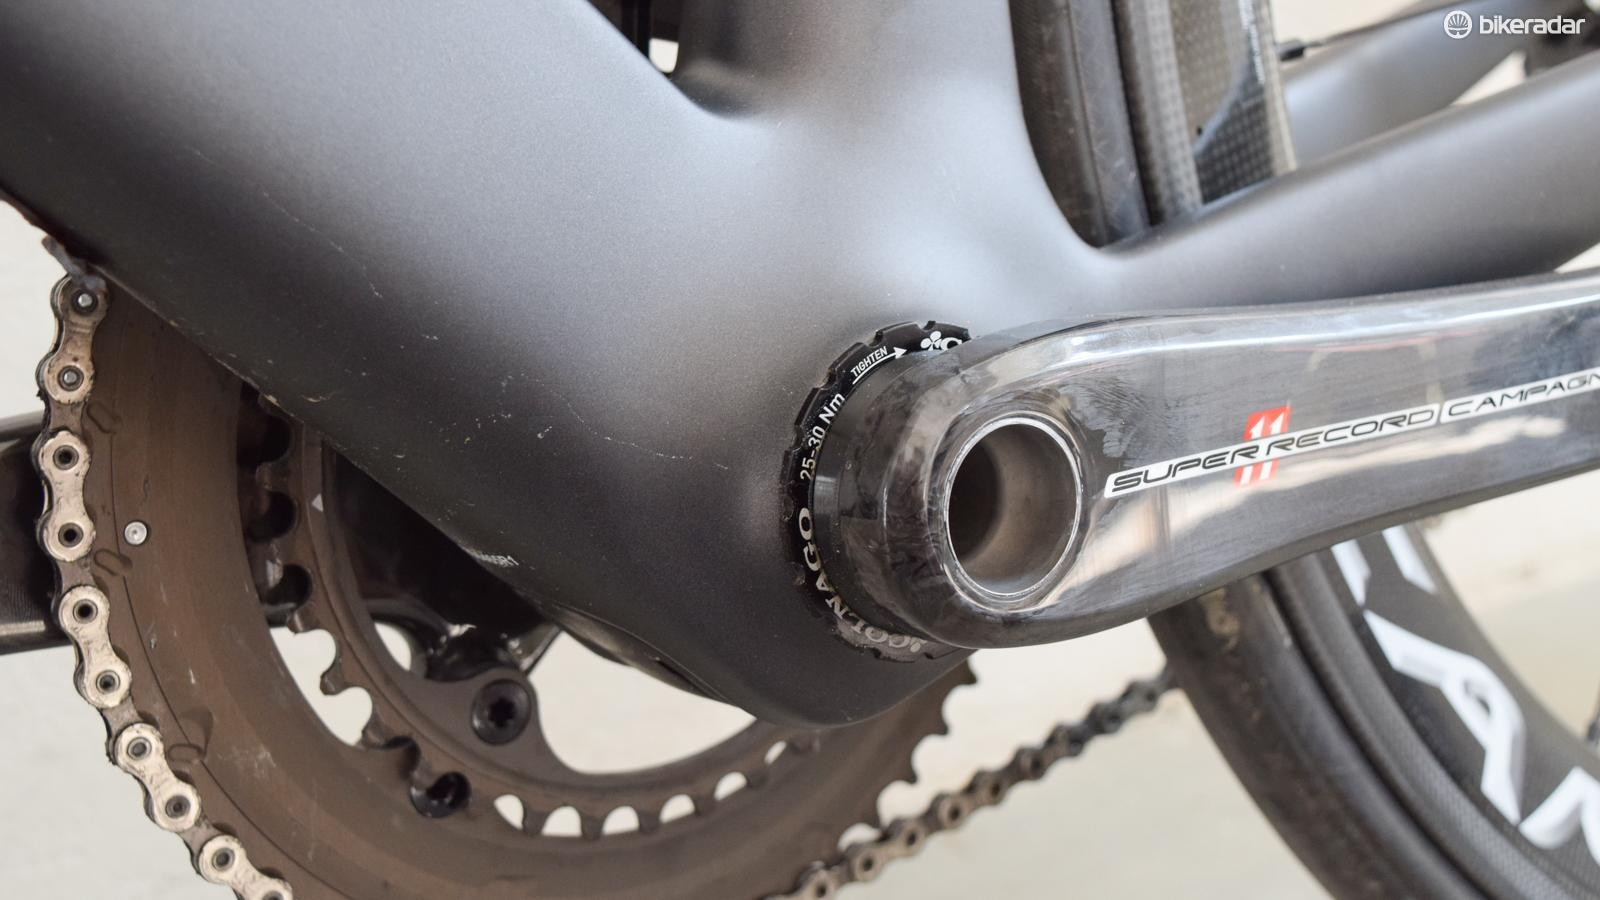 The Concept gets the same ThreadFit bottom bracket as the C60